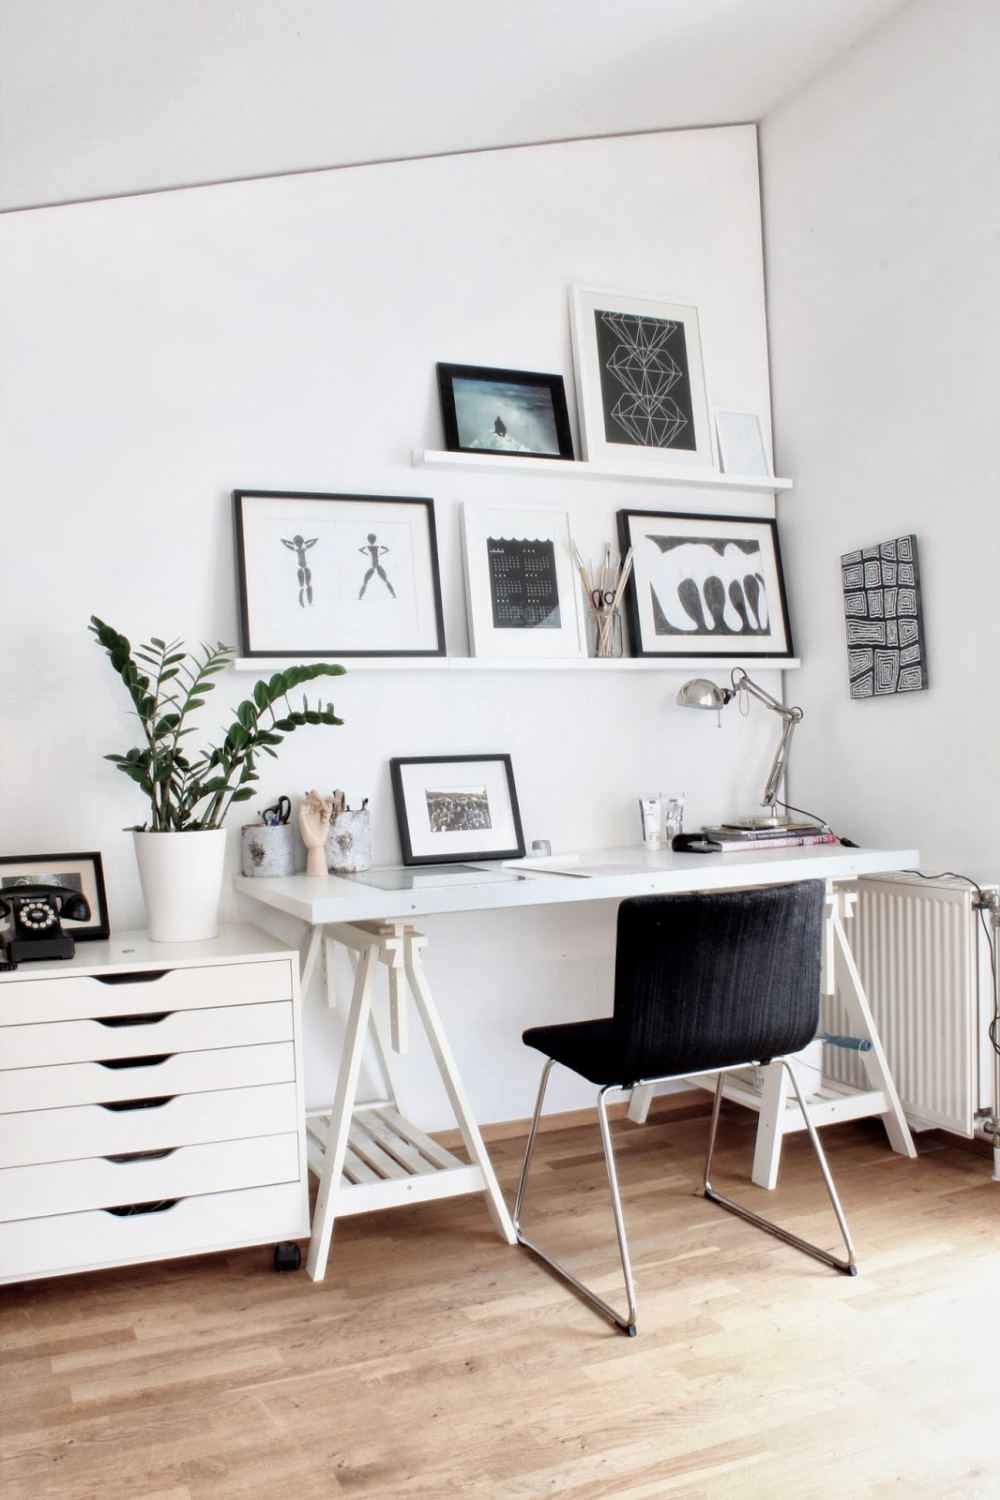 Interior Exquisite Home Office Images From Scandinavian Design Blogs Using White Wooden Wall